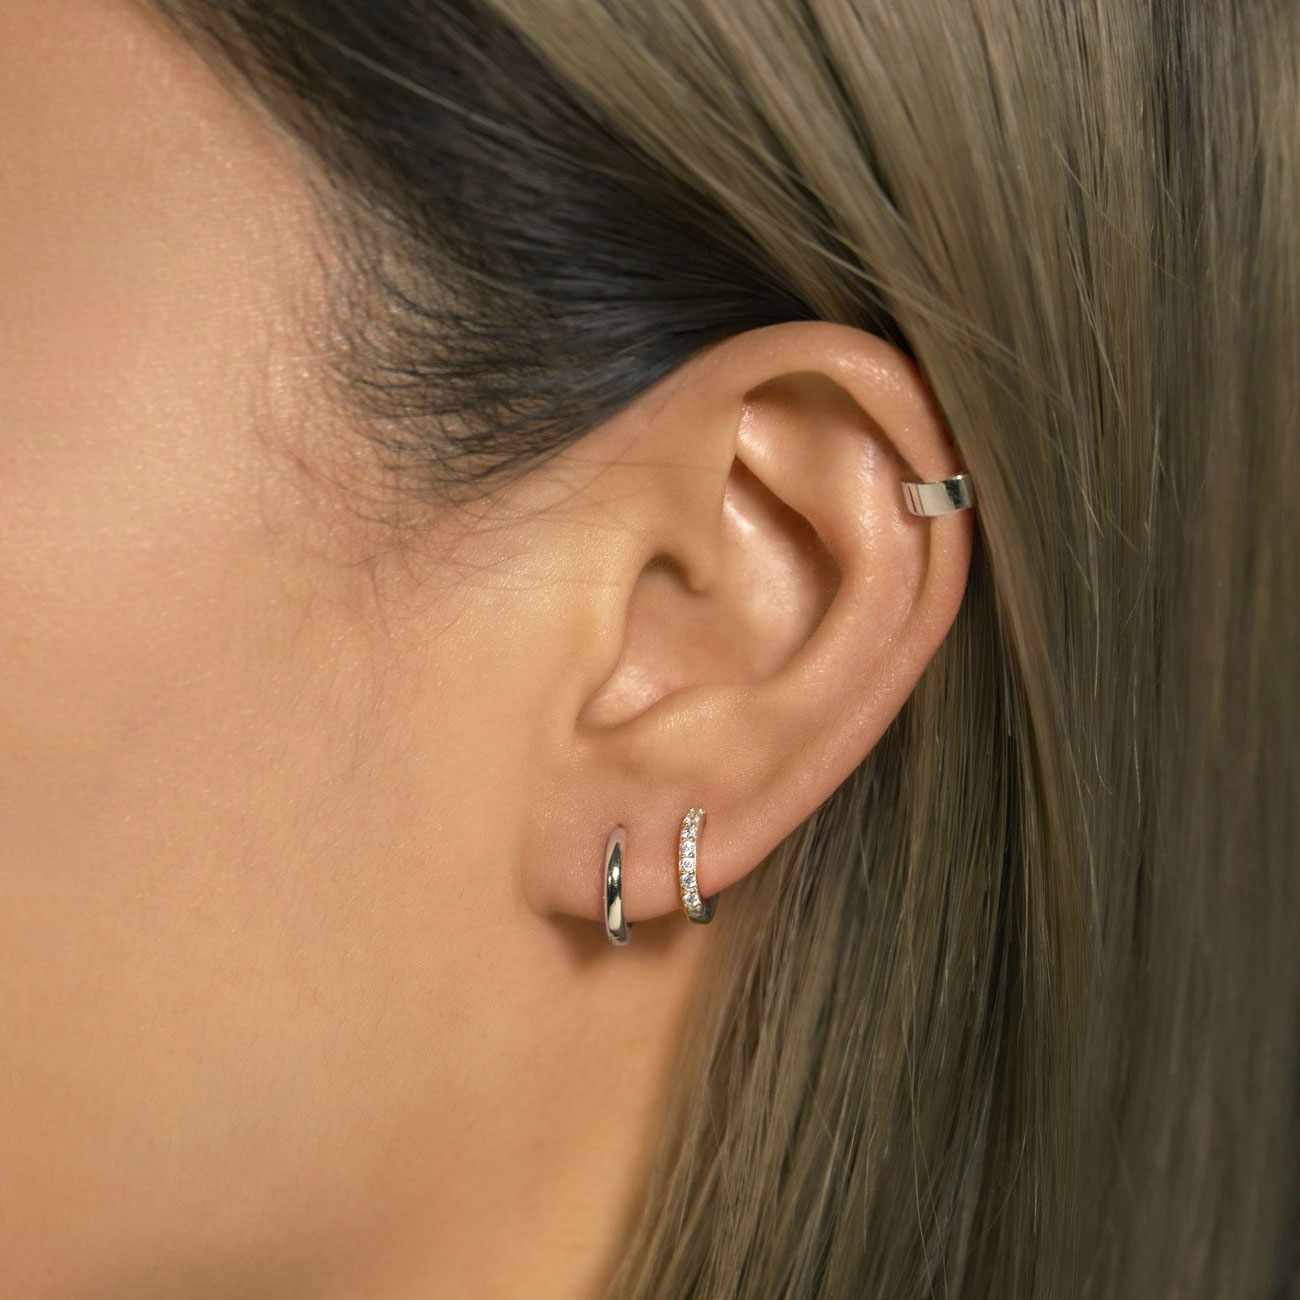 Silver Ear Cuff worn on cartilage with tiny huggie hoop earrings